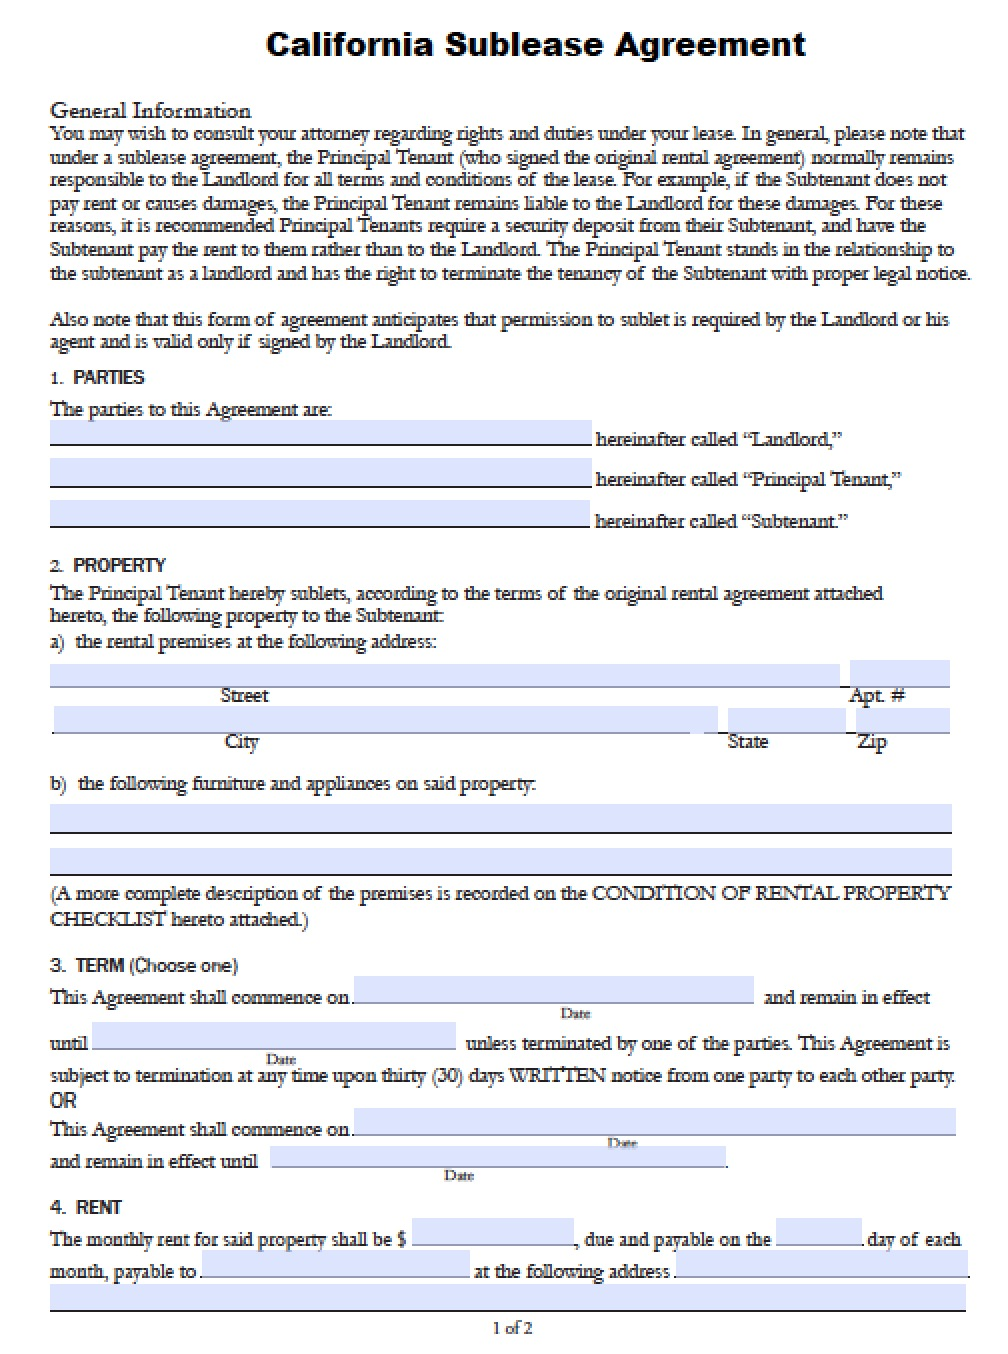 California Sublease Agreement Version #2 | Adobe PDF | Microsoft Word